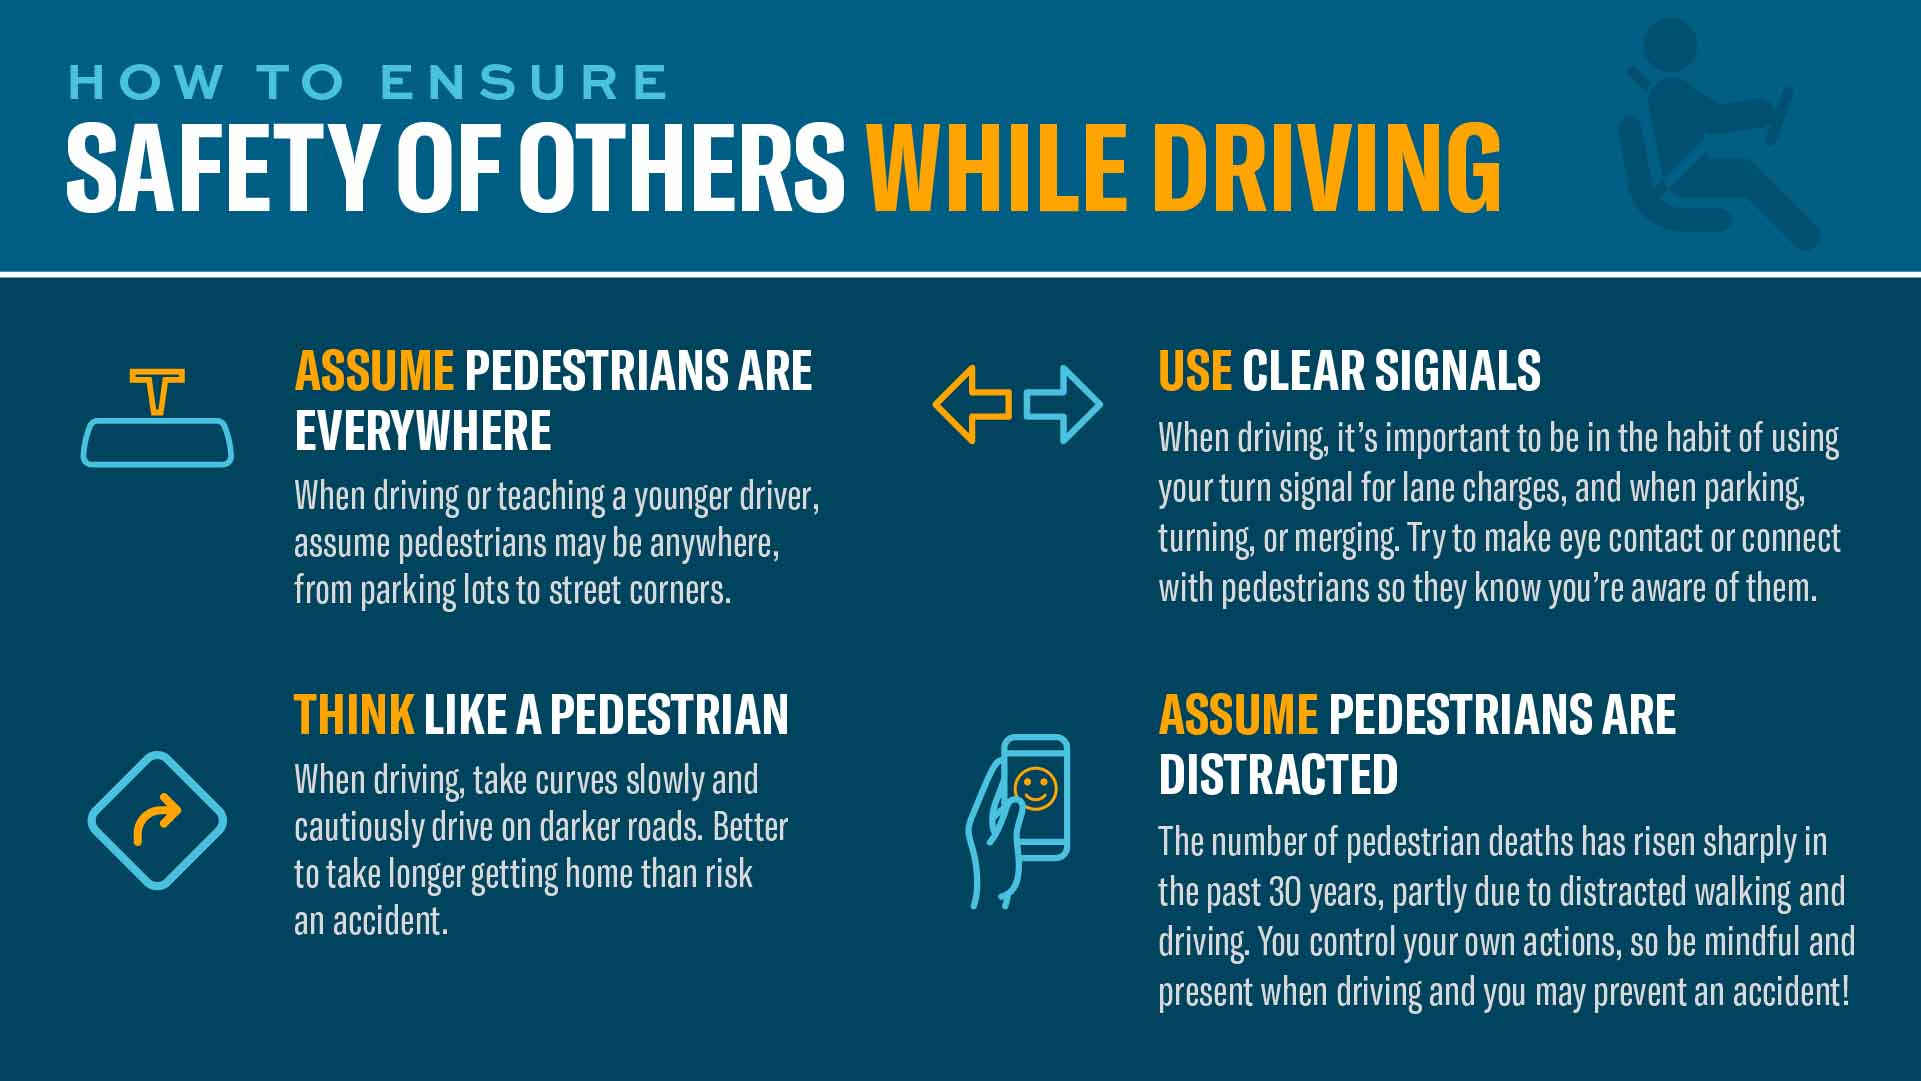 Ensure-Safety-Others-While-Driving-Tips